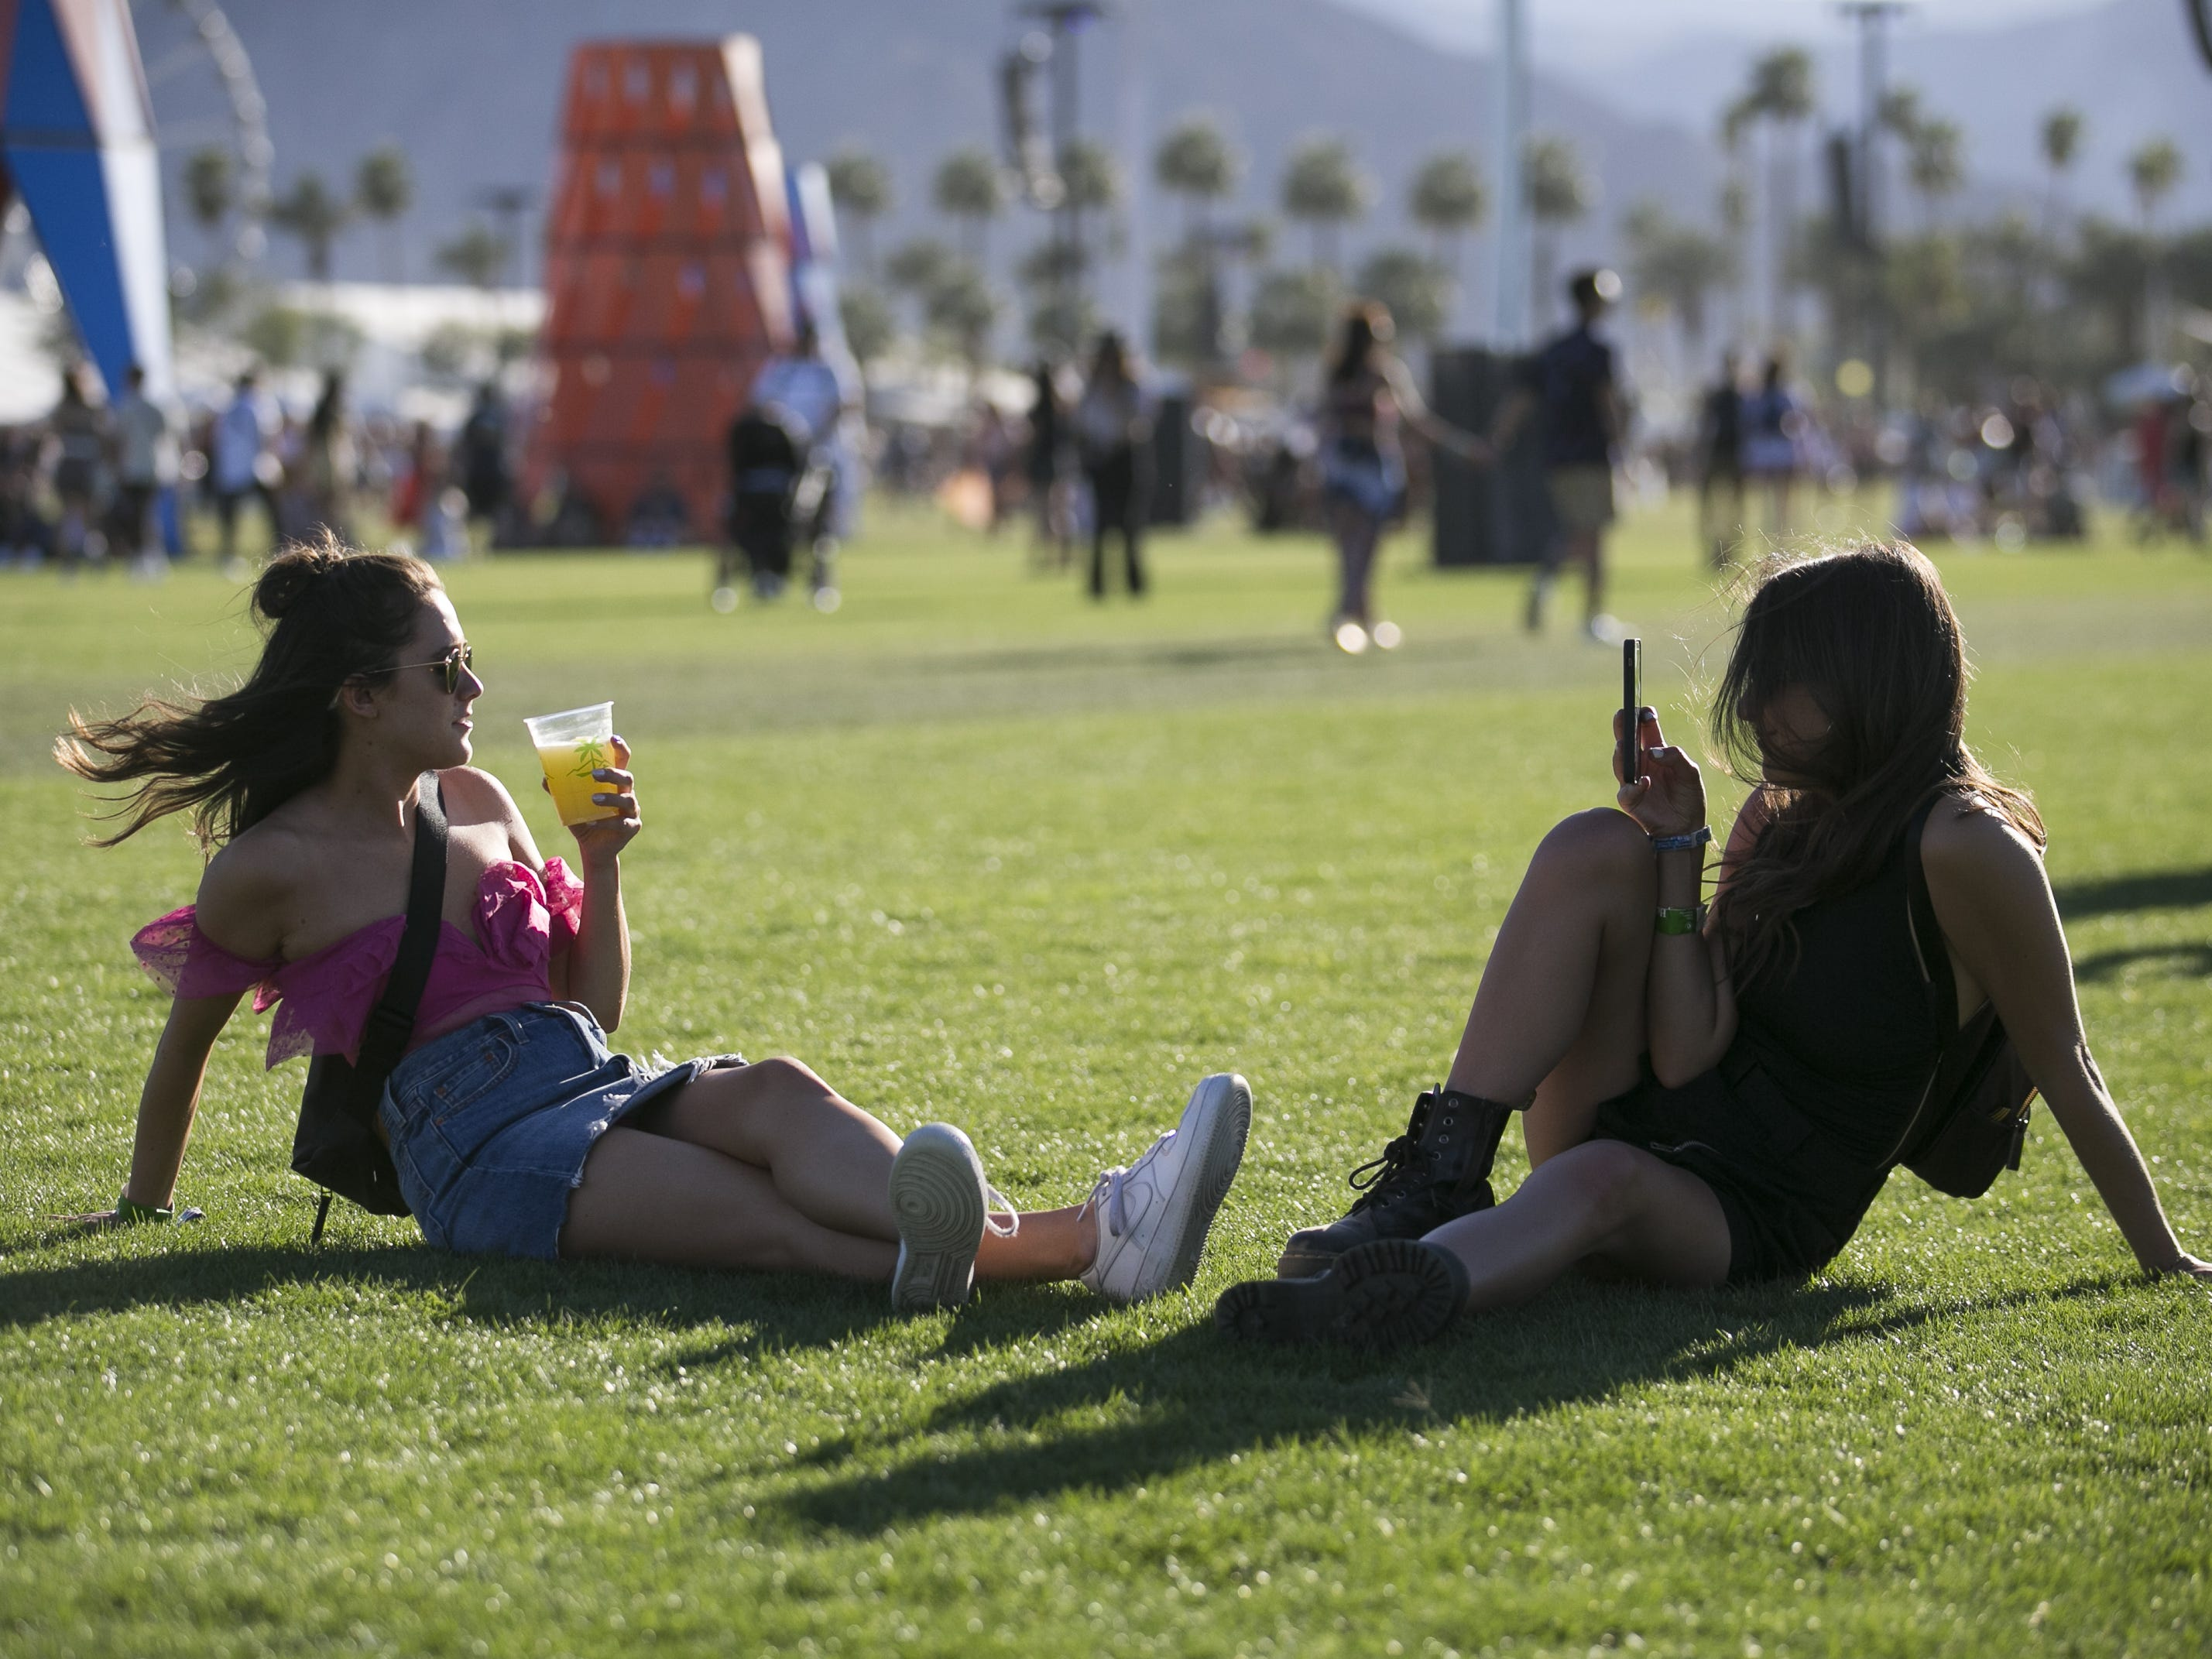 Savanna Stephens (left) and Ally Lucchesi (right) both from Los Angeles, sit in the grass at the Coachella Valley Music and Arts Festival in Indio, Calif. on April 12, 2019.